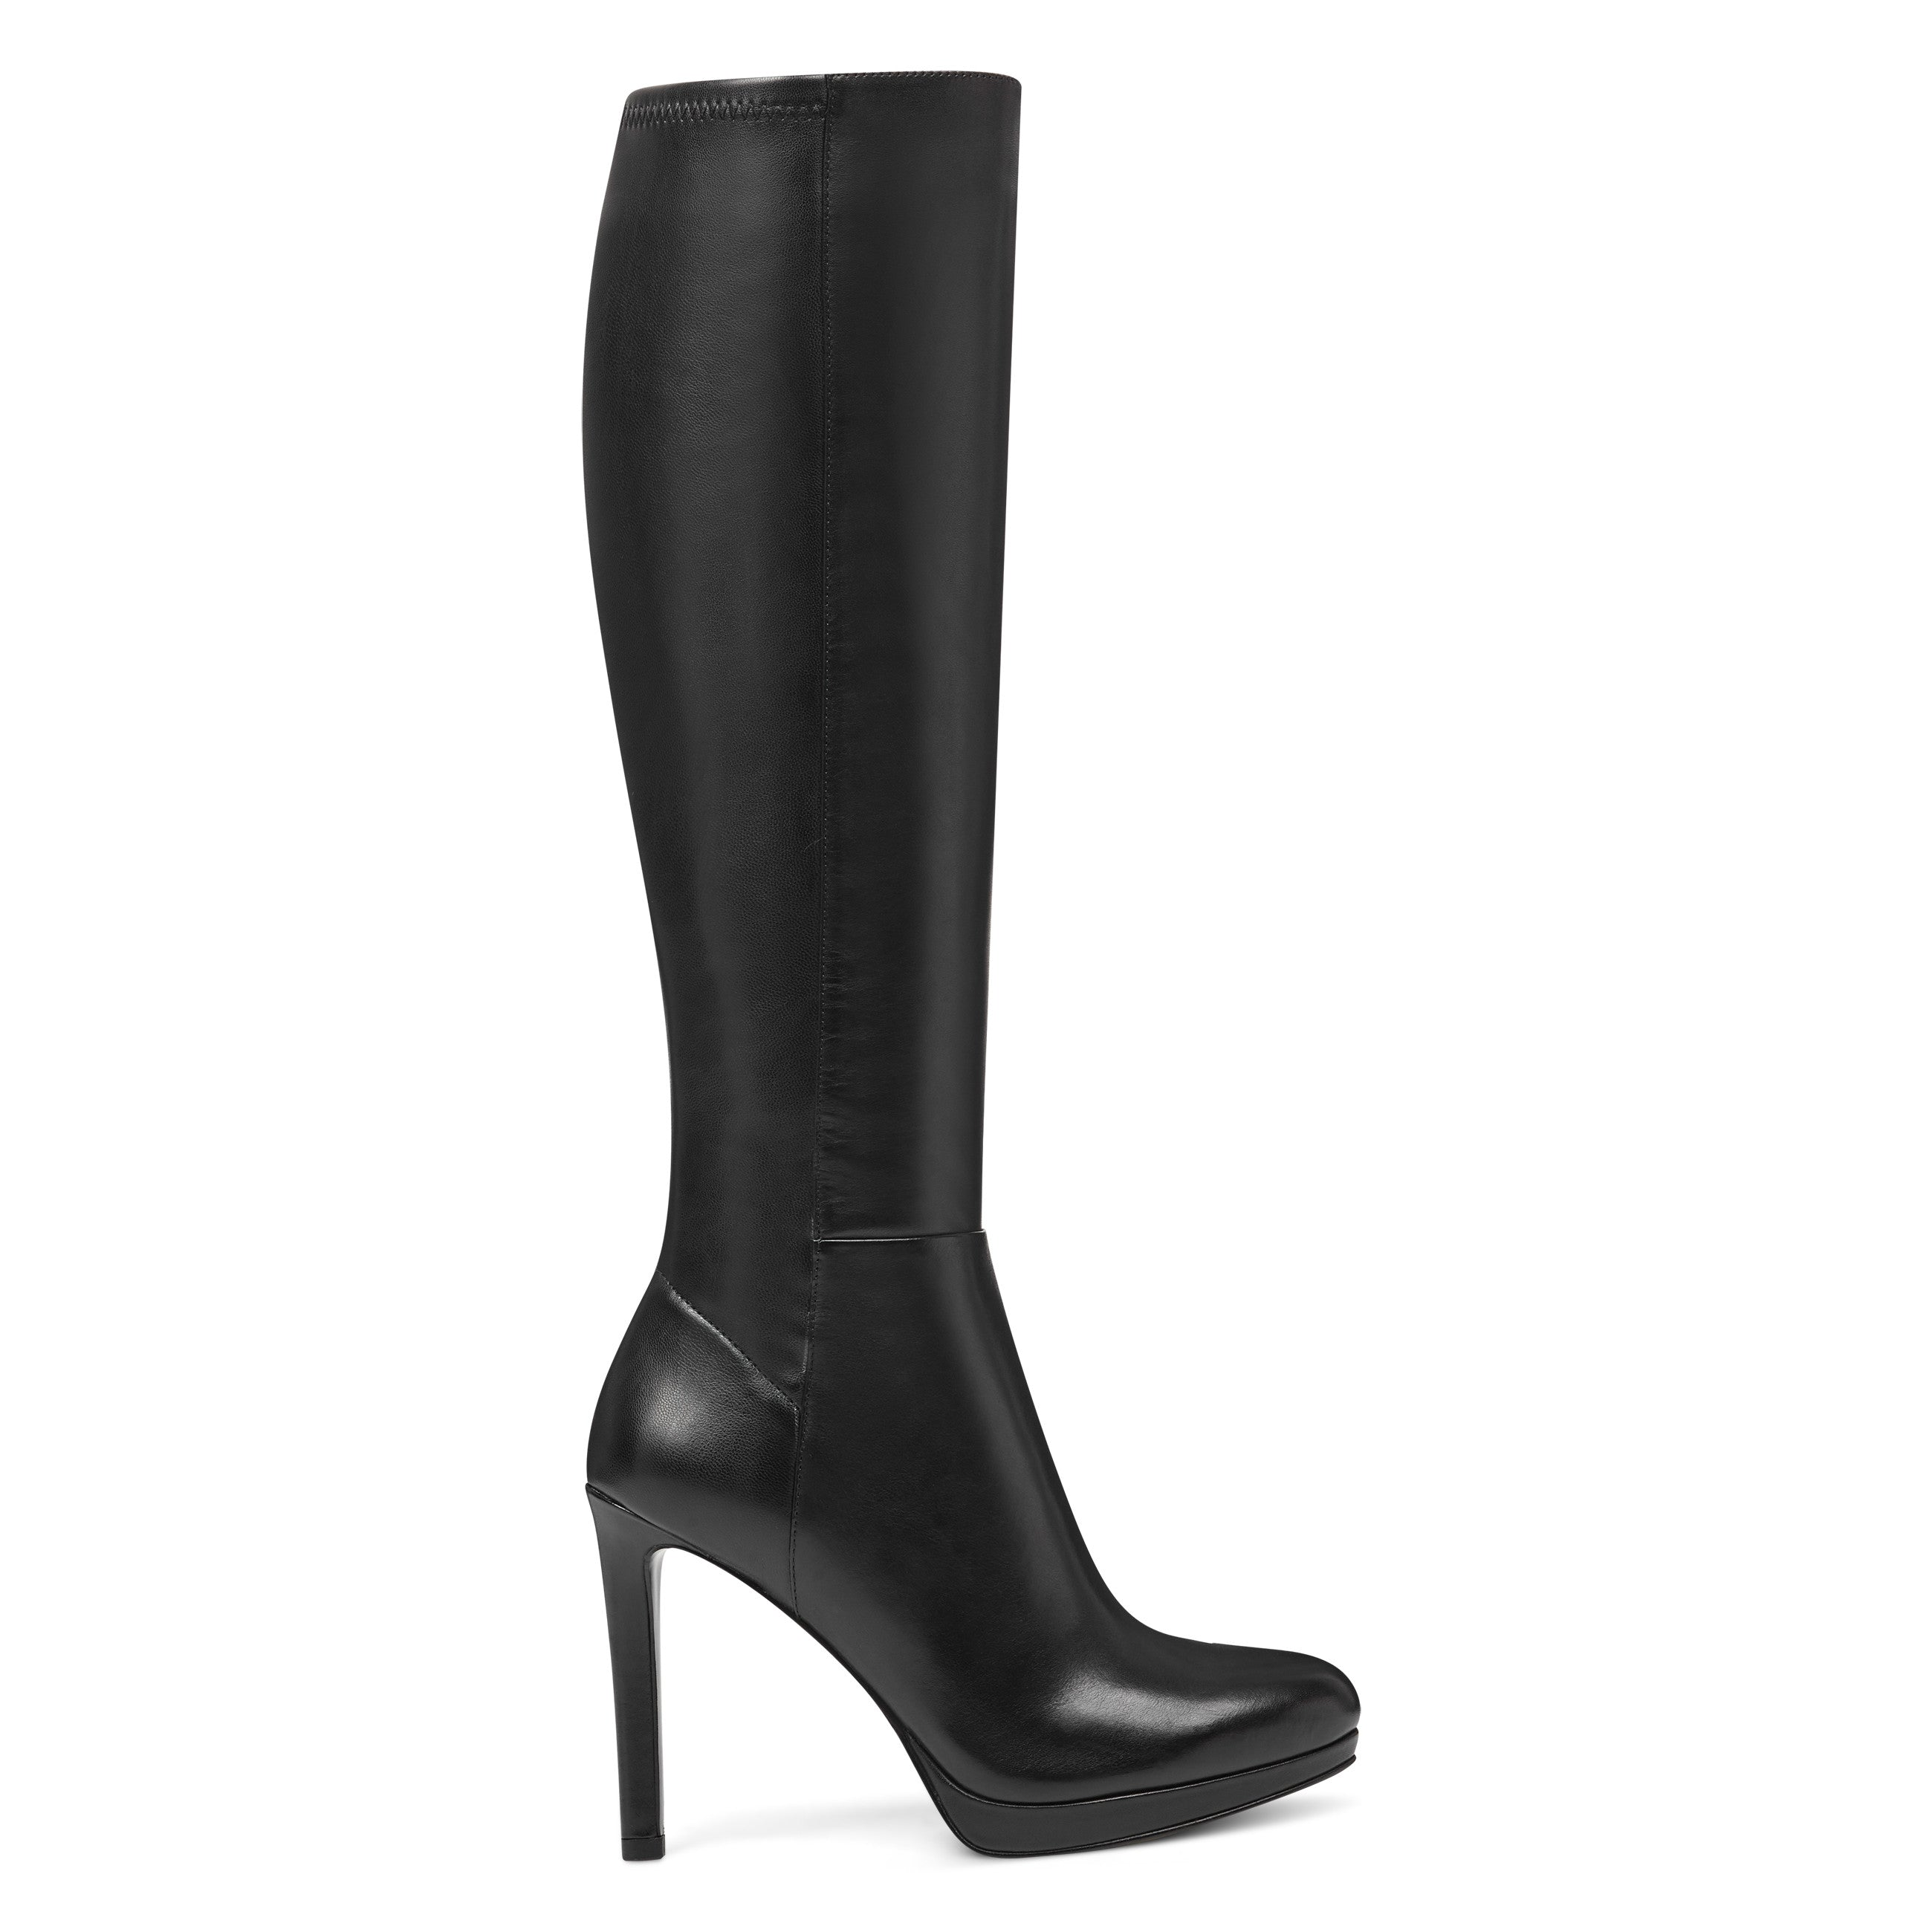 NINEWEST Quizme Wide Calf Platform Boots